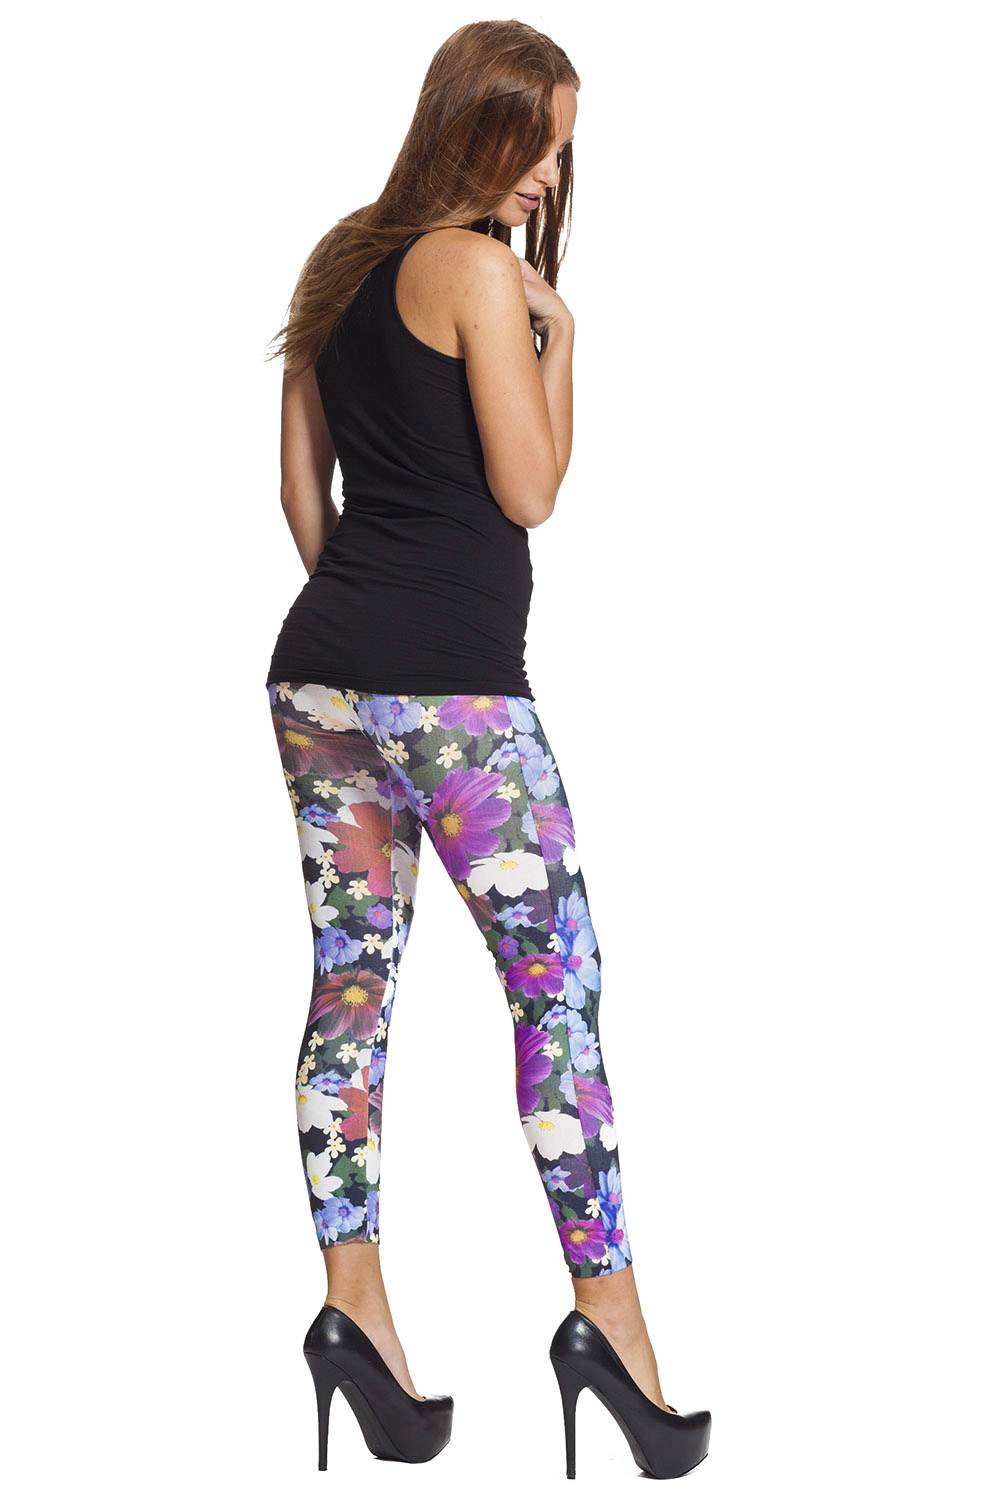 Hue Ladies' 2-pack Legging Wide Waistband Ultra Soft Cotton.